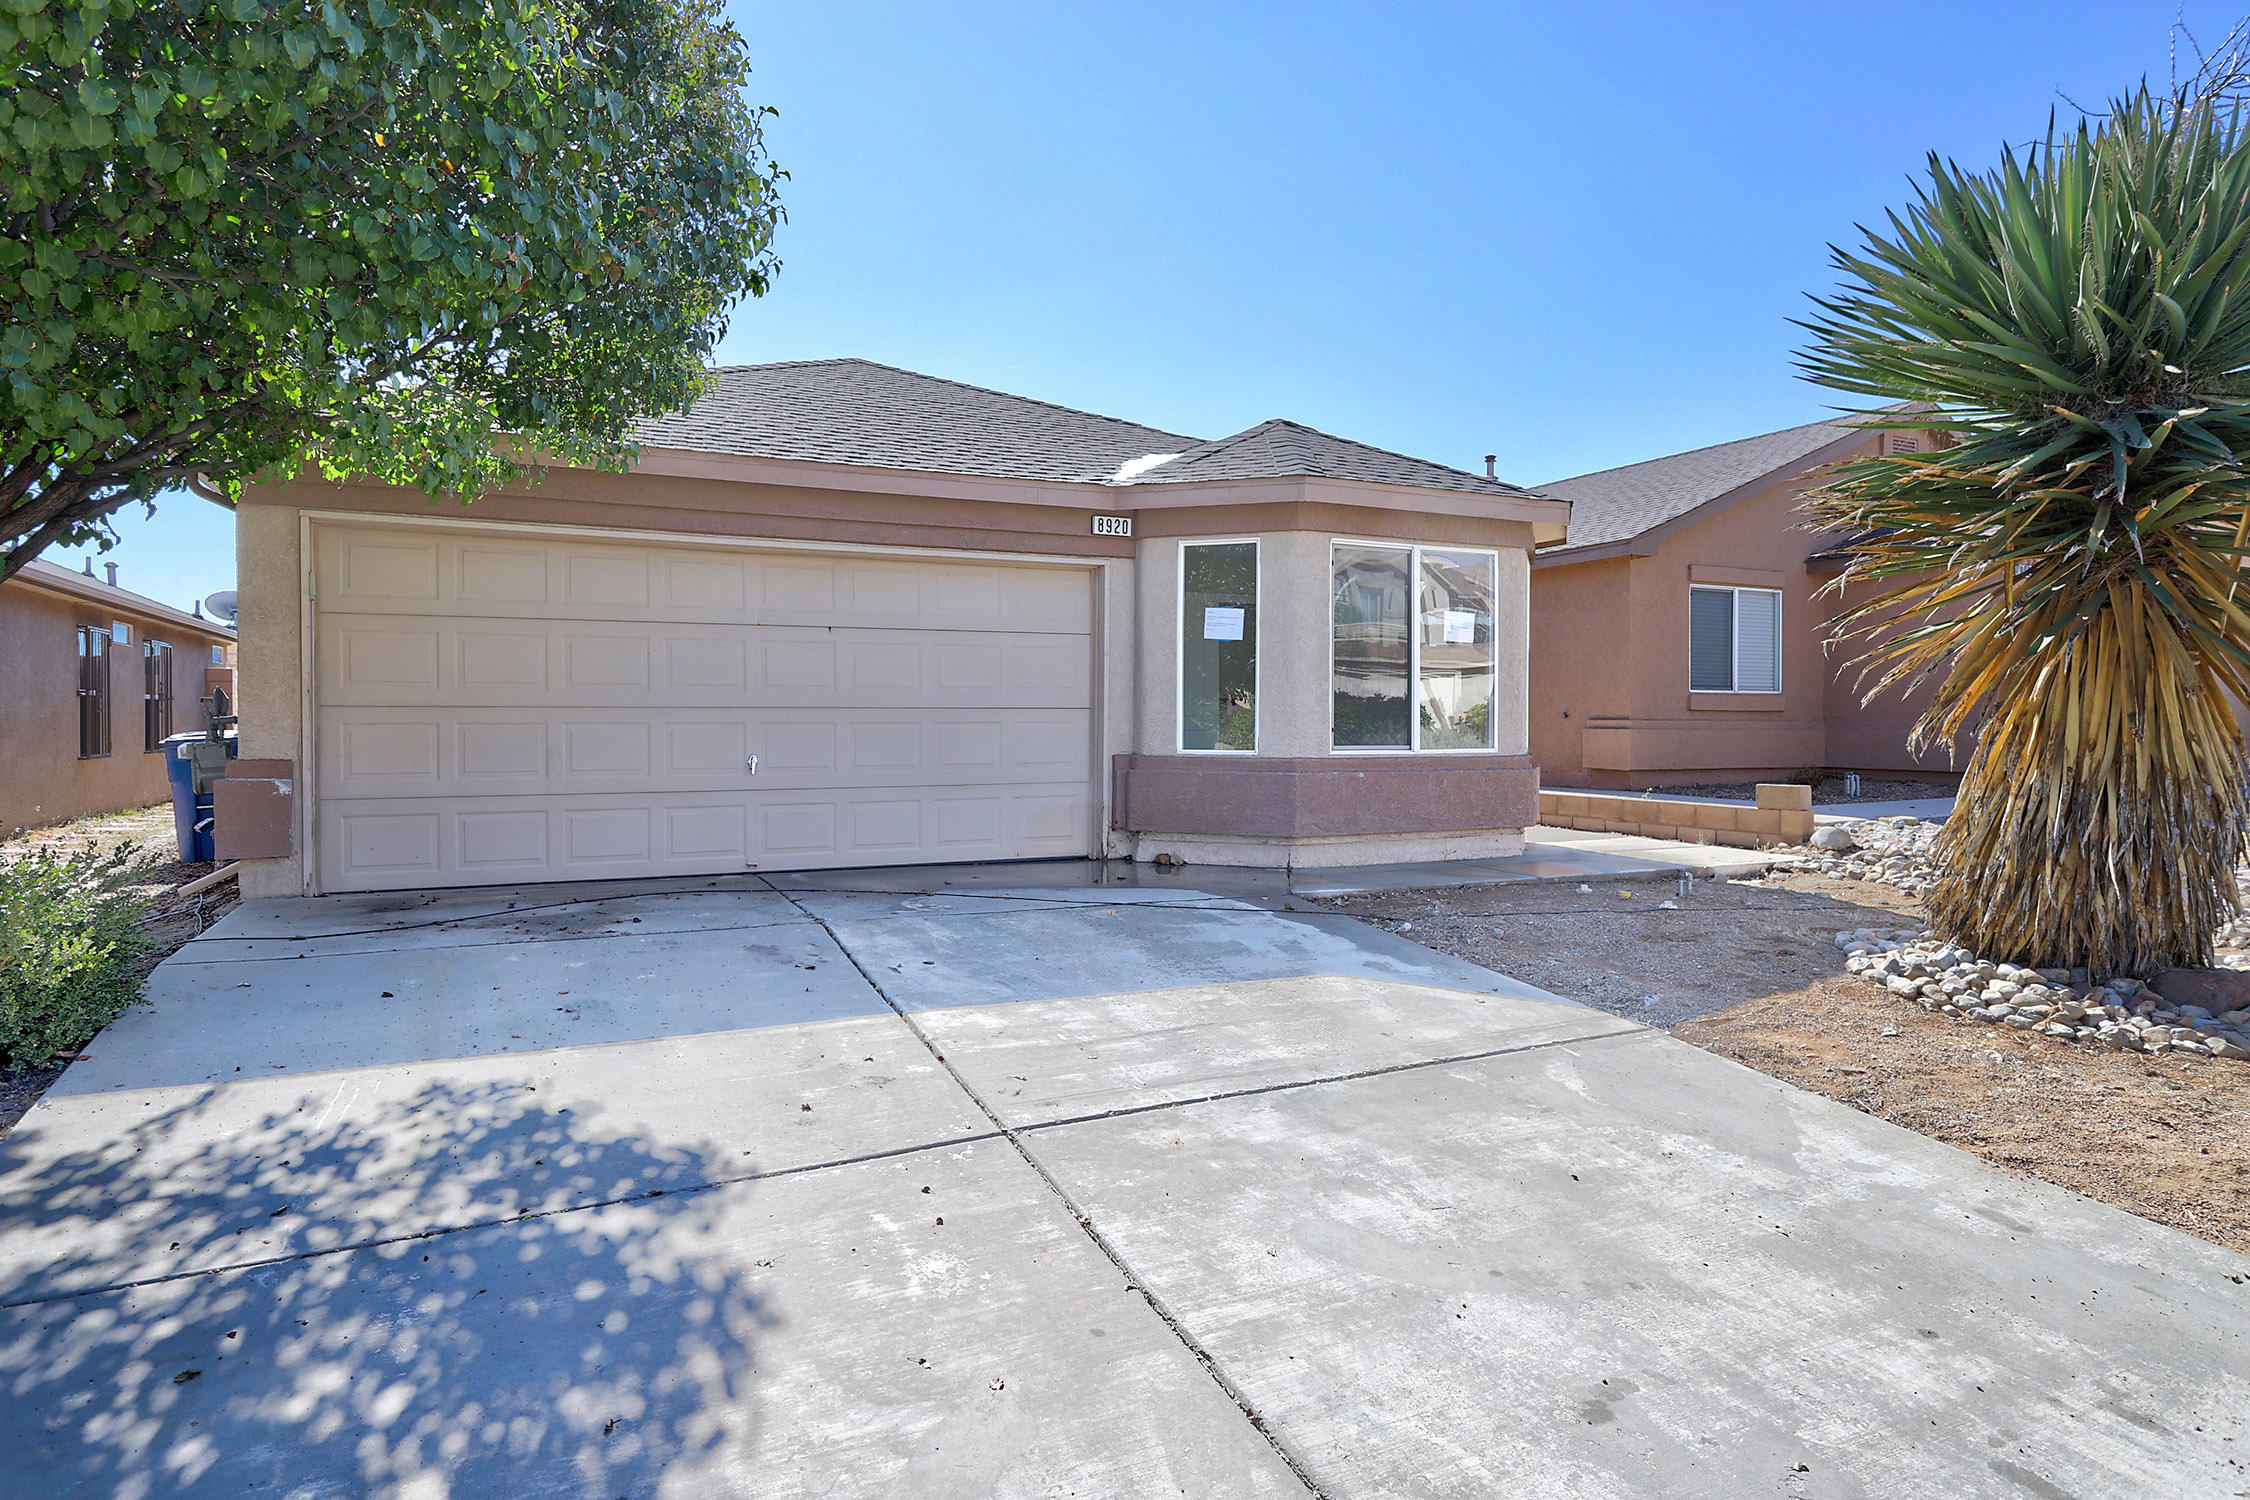 Move in ready!!!  New Paint ,New Carpet, New Stainless Steel Appliances, Open Floor Plan, Refrigerated Air.  Covered Patio.  Gated Community.